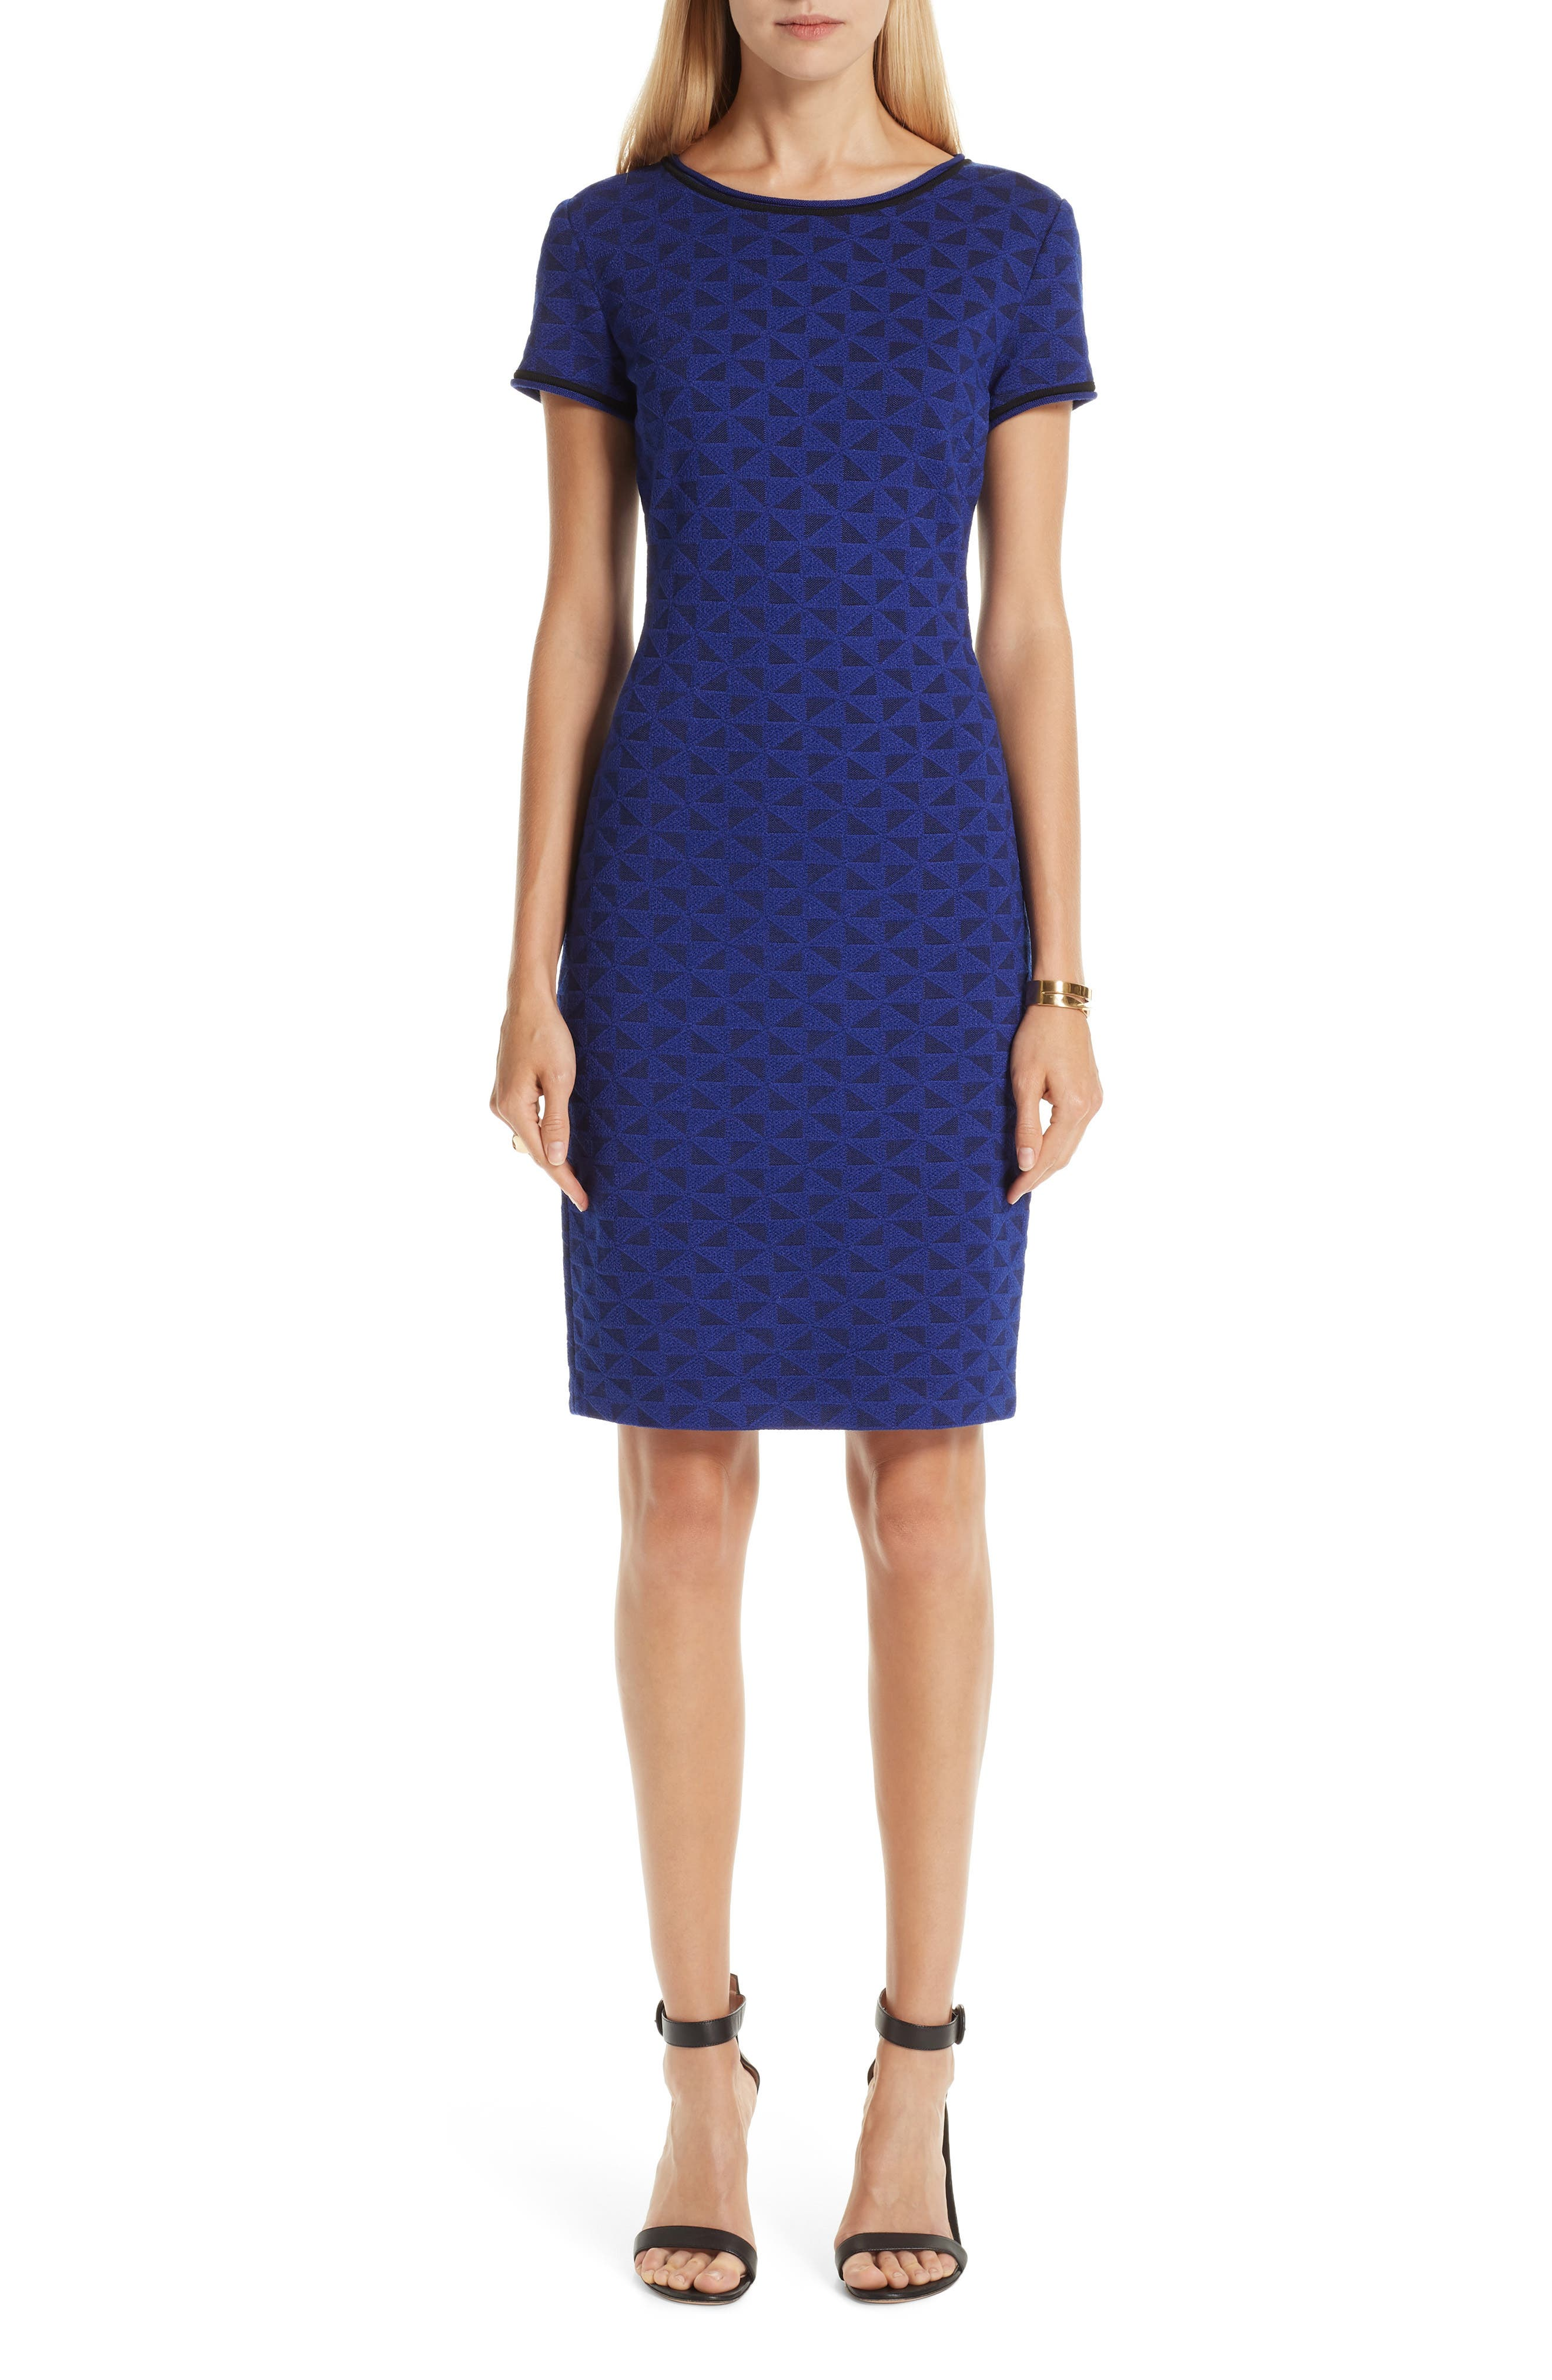 ST. JOHN COLLECTION, Micro Geo Blister Knit Sheath Dress, Main thumbnail 1, color, CAVIAR/ SAPPHIRE